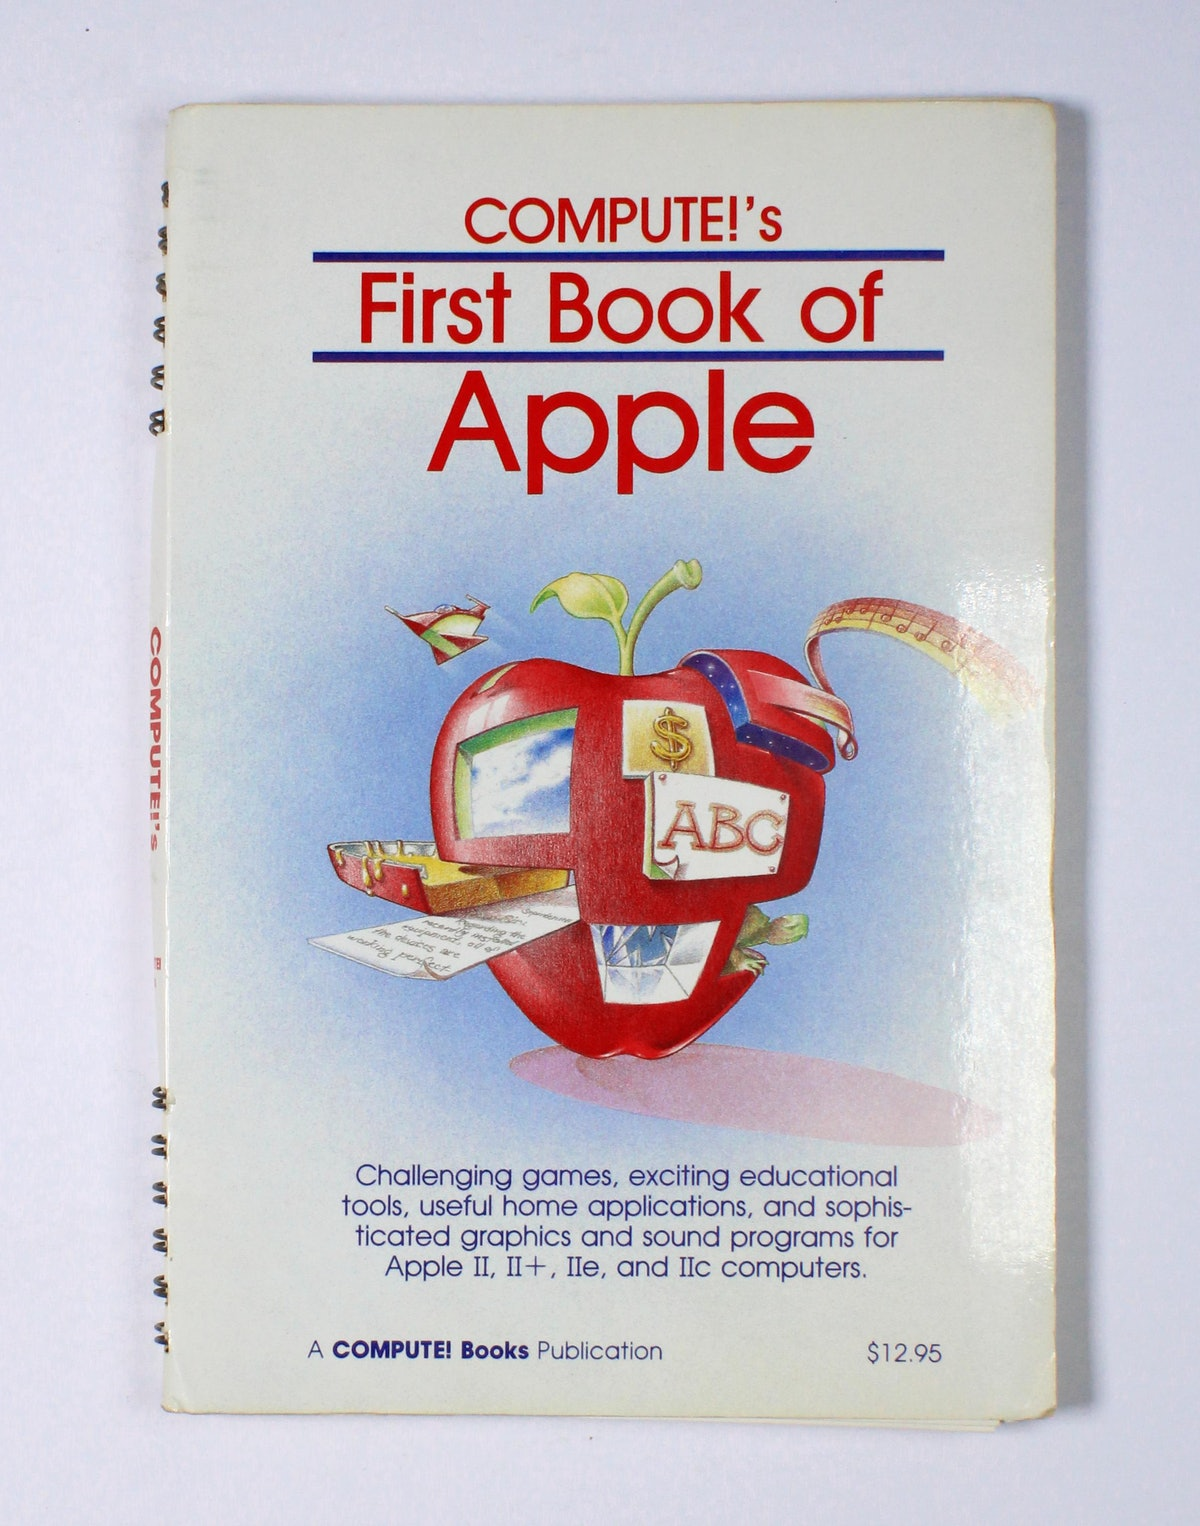 COMPUTE!'s First Book of Apple